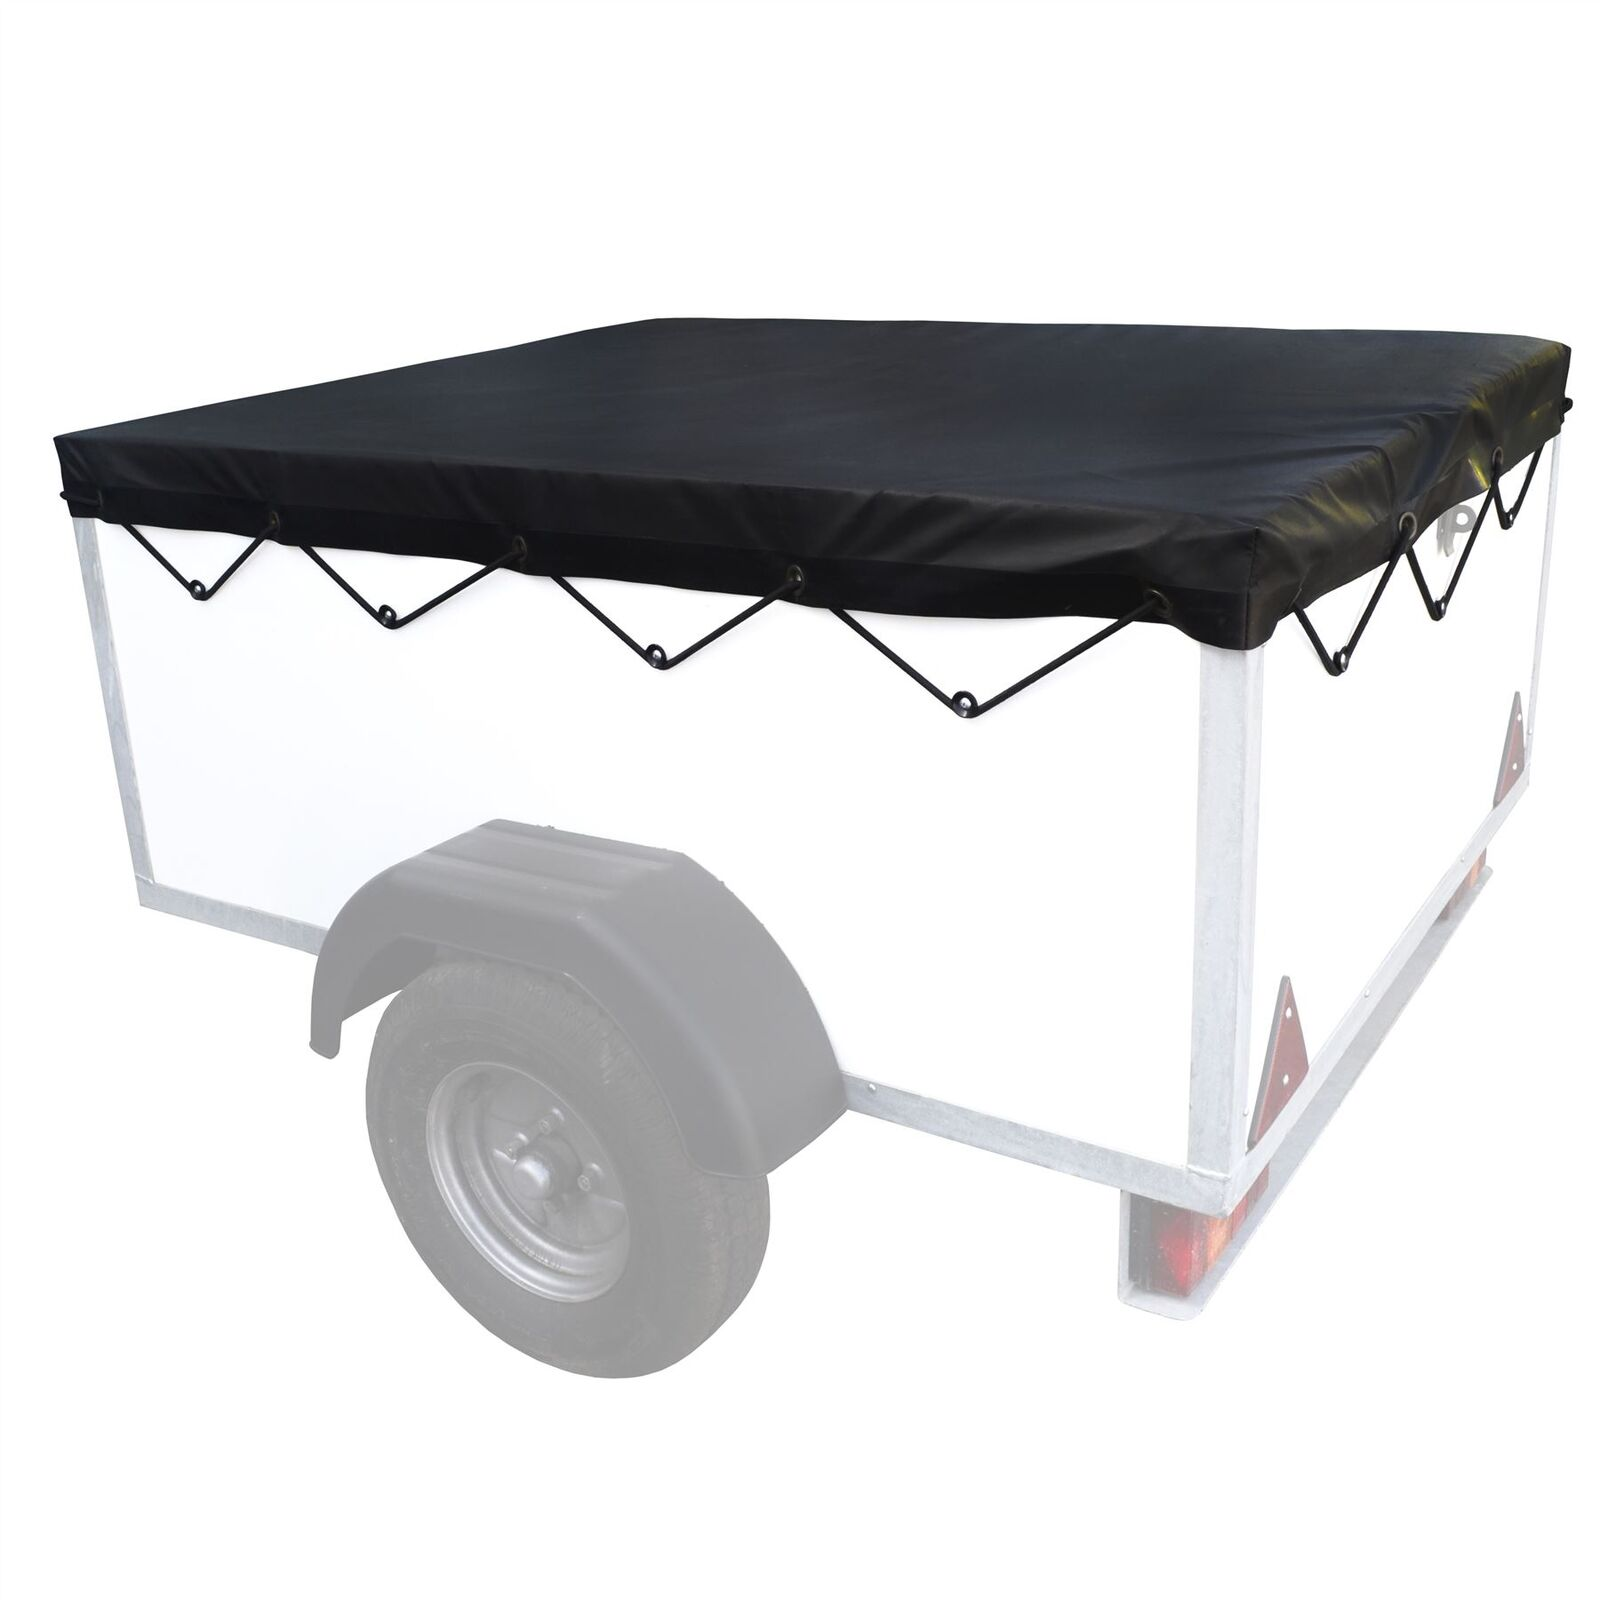 Industrial Trailer Cover 5' x 4' (152x122cm) All Sizes